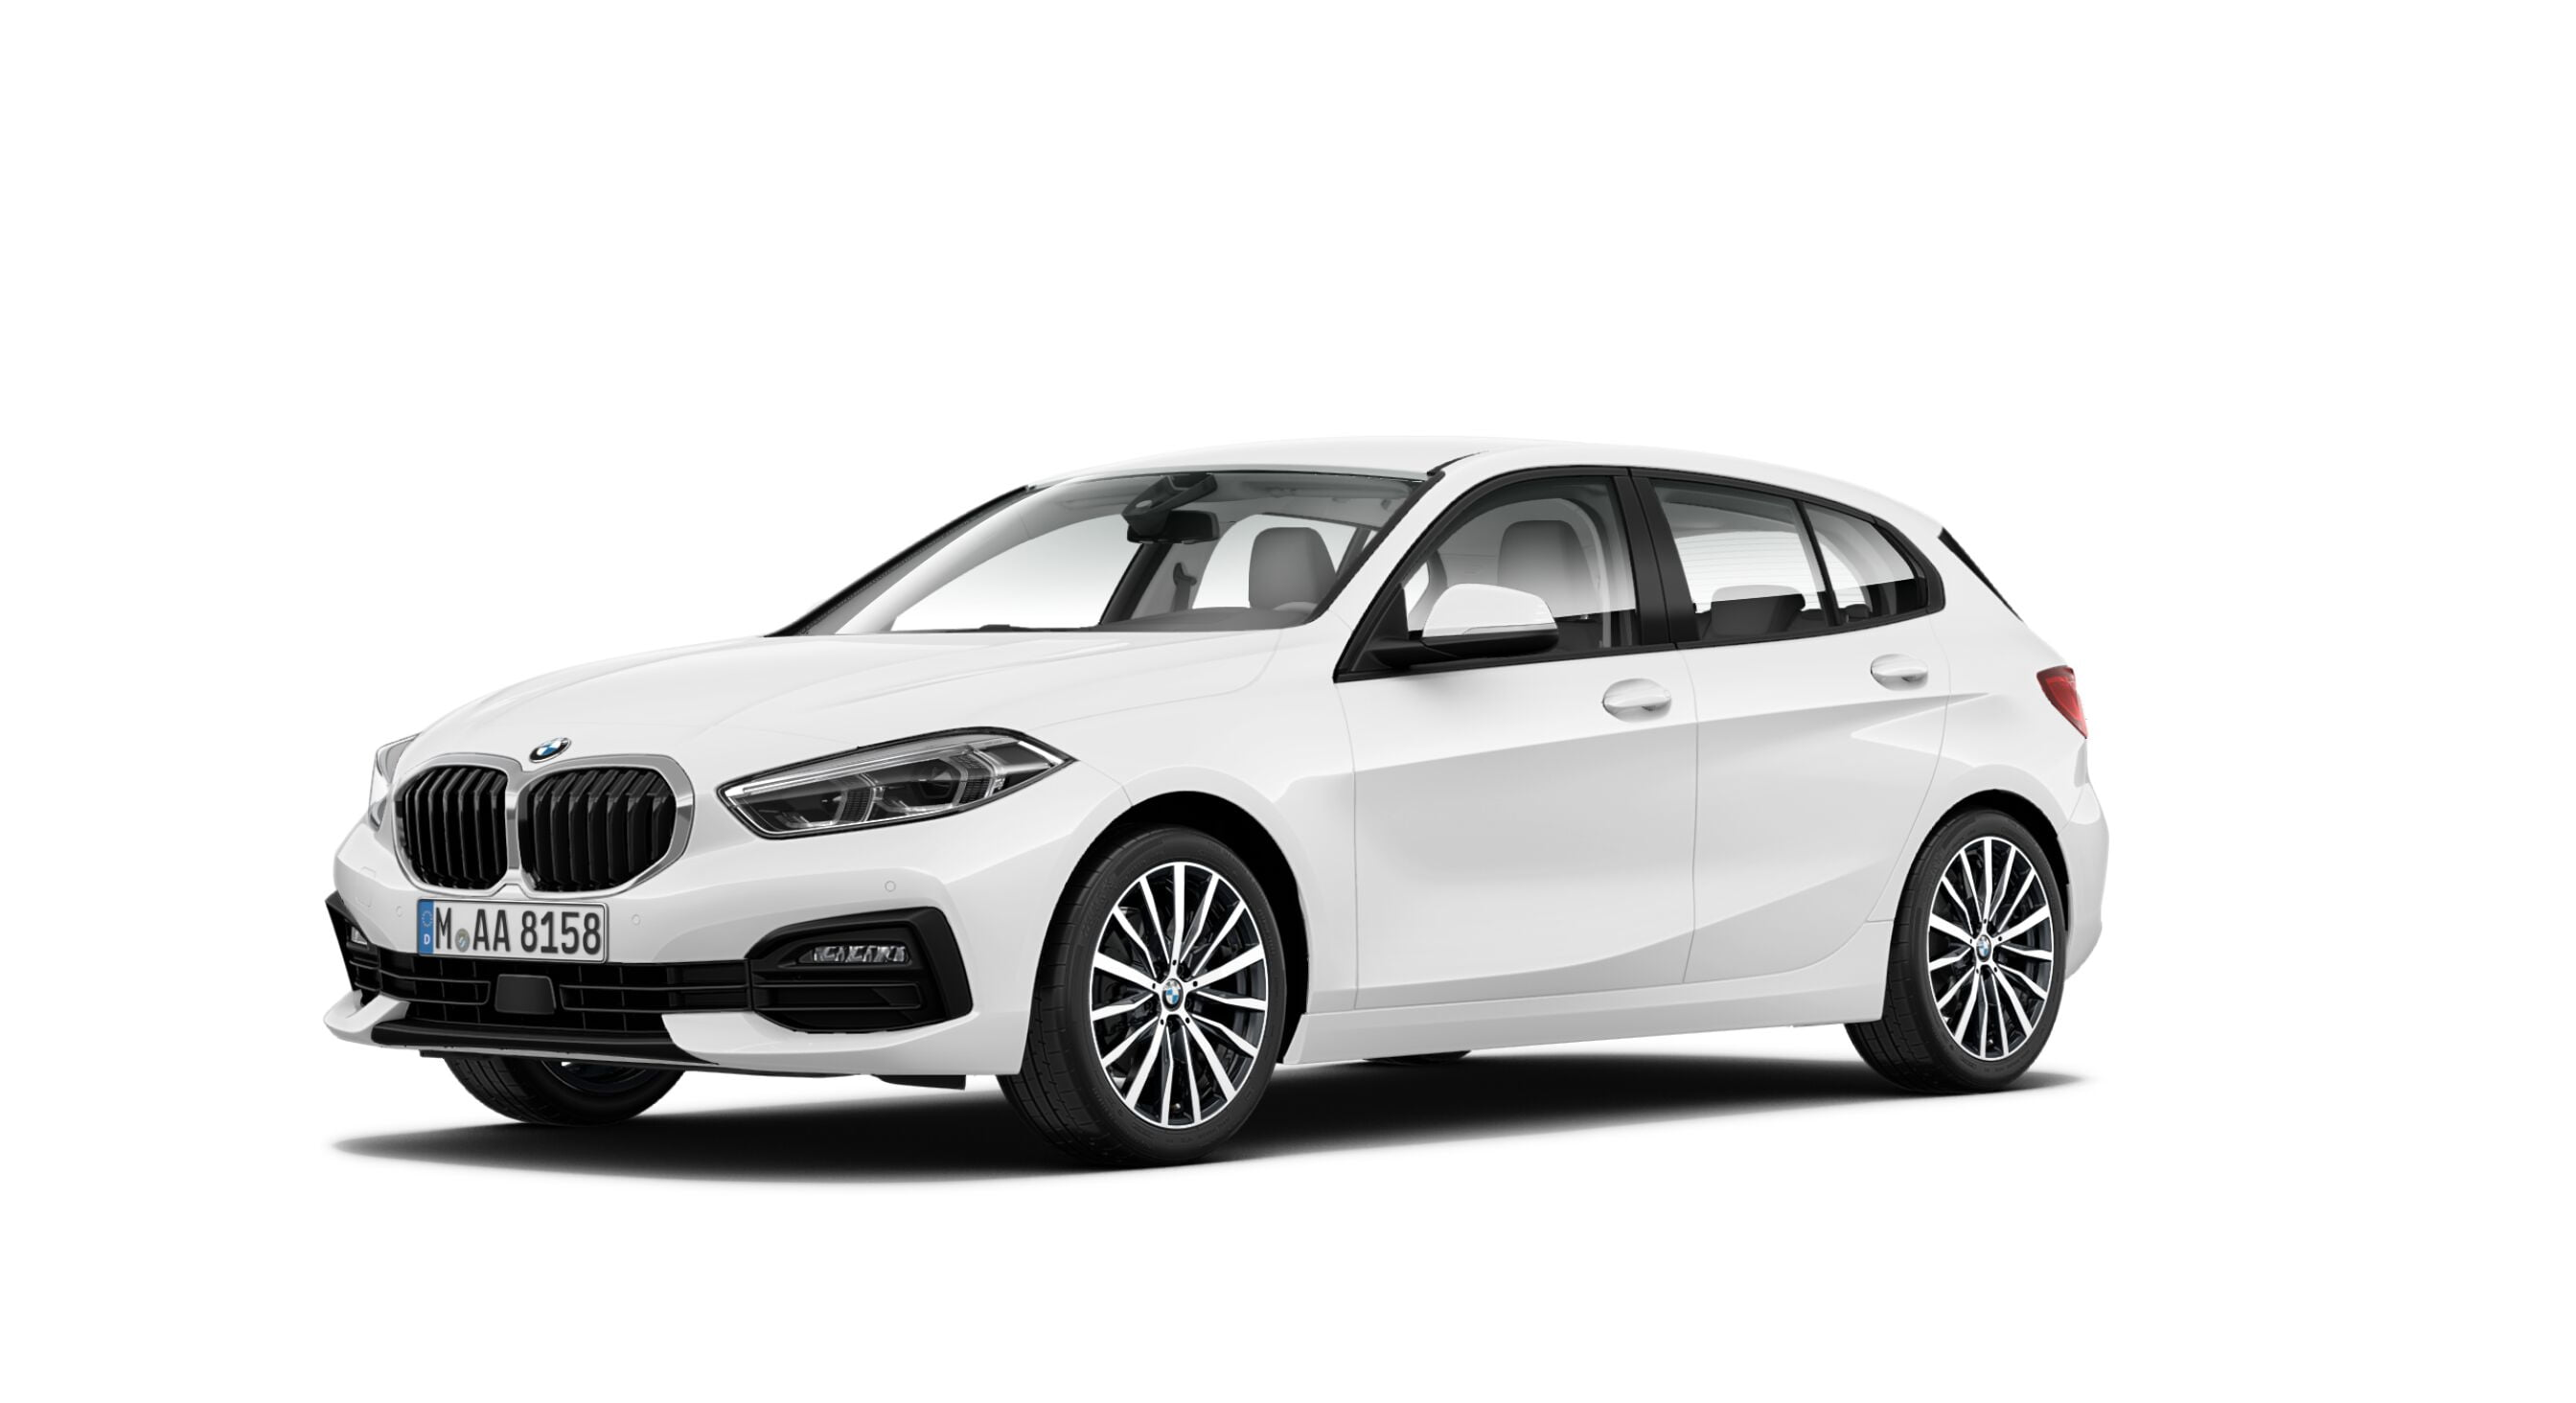 BMW 1-Serie 118i 103kW/140pk Corporate Executive Automaat 5d.